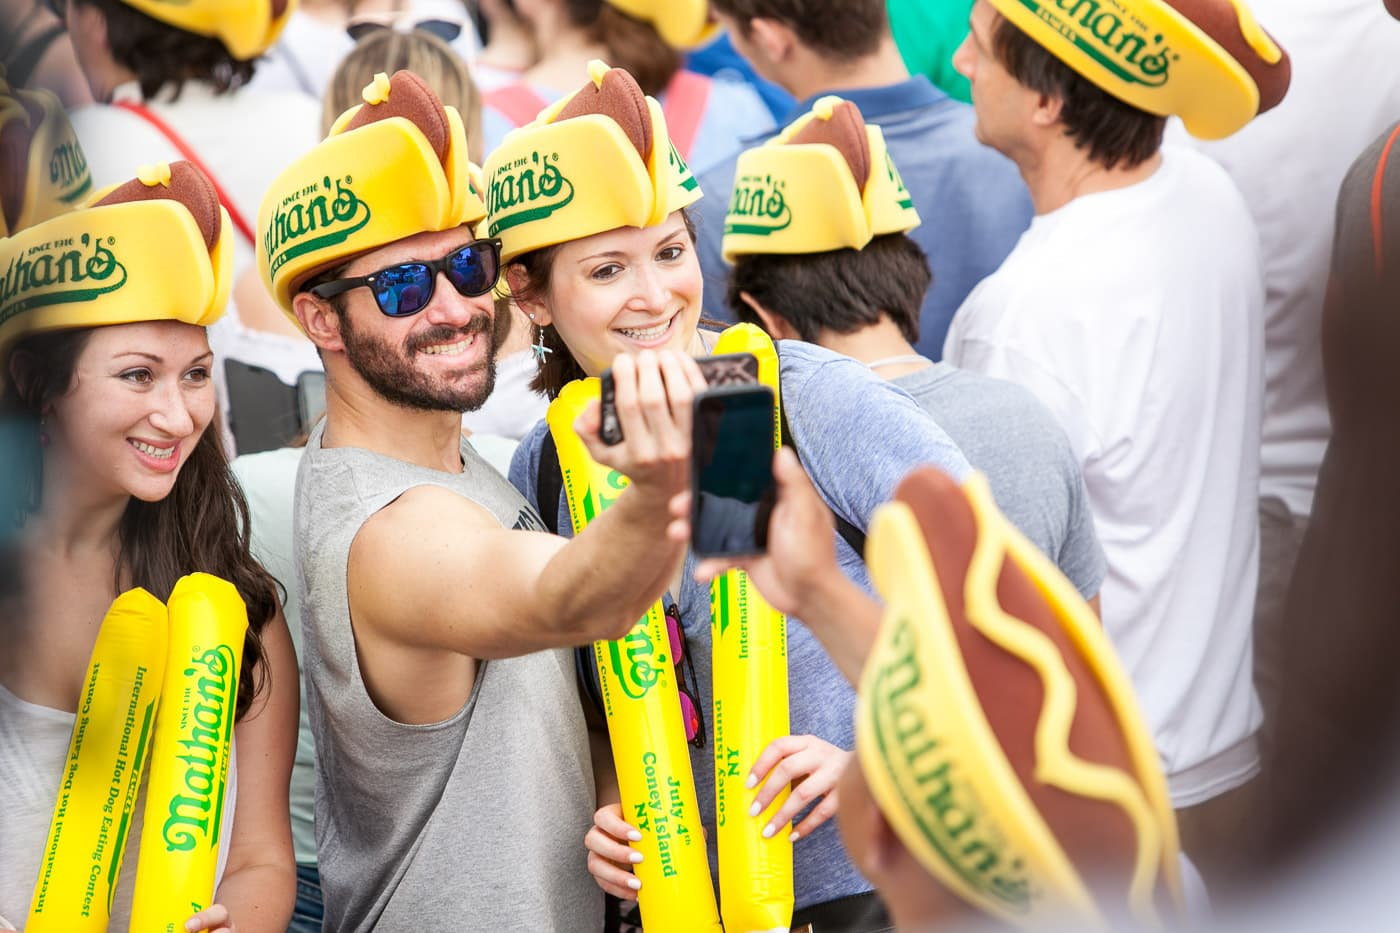 Fans cheer on the 2018 Nathan's Famous hot dog eating contest on the Fourth of July at Coney Island in Brooklyn, New York.